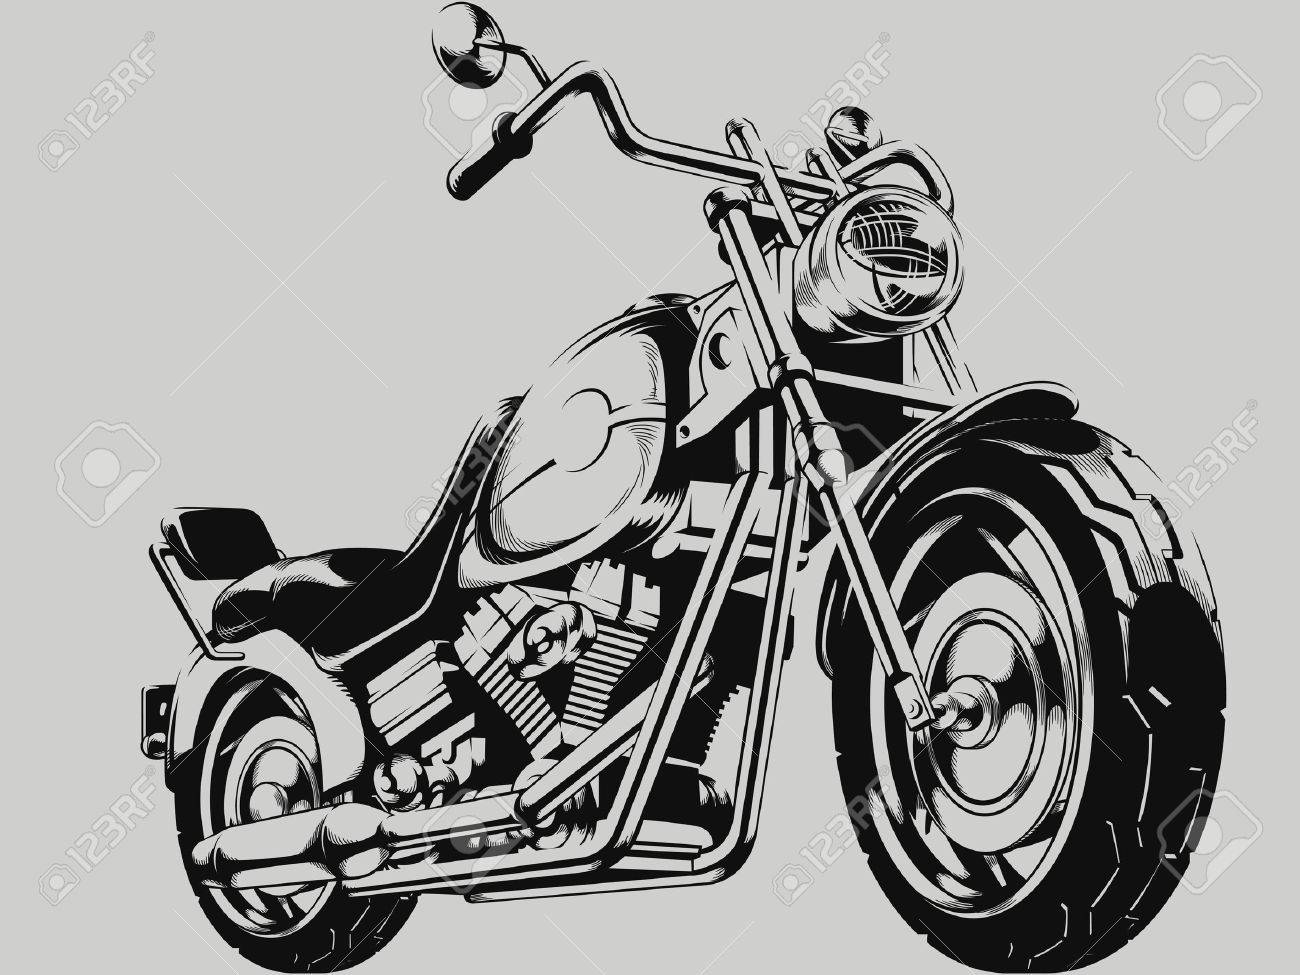 hight resolution of vintage motorcycle vector silhouette illustration